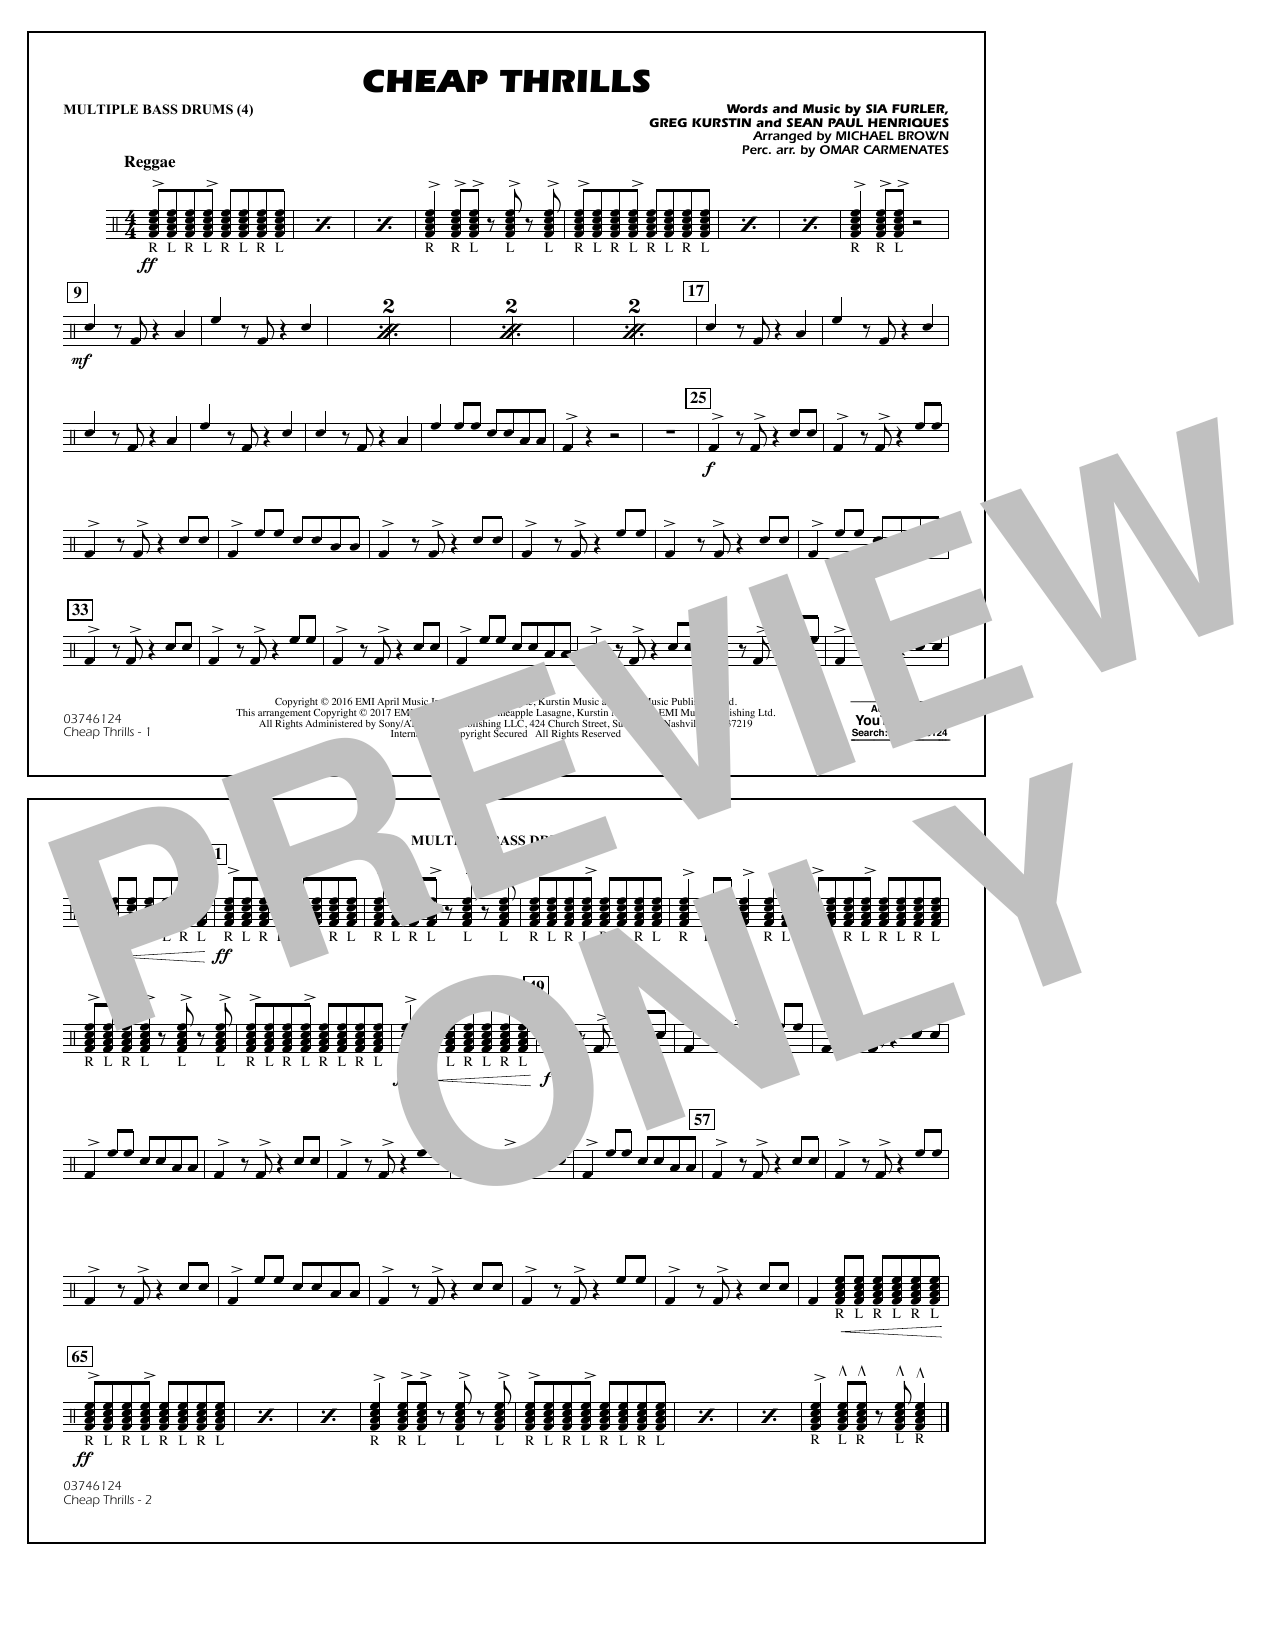 Cheap Thrills - Multiple Bass Drums Sheet Music